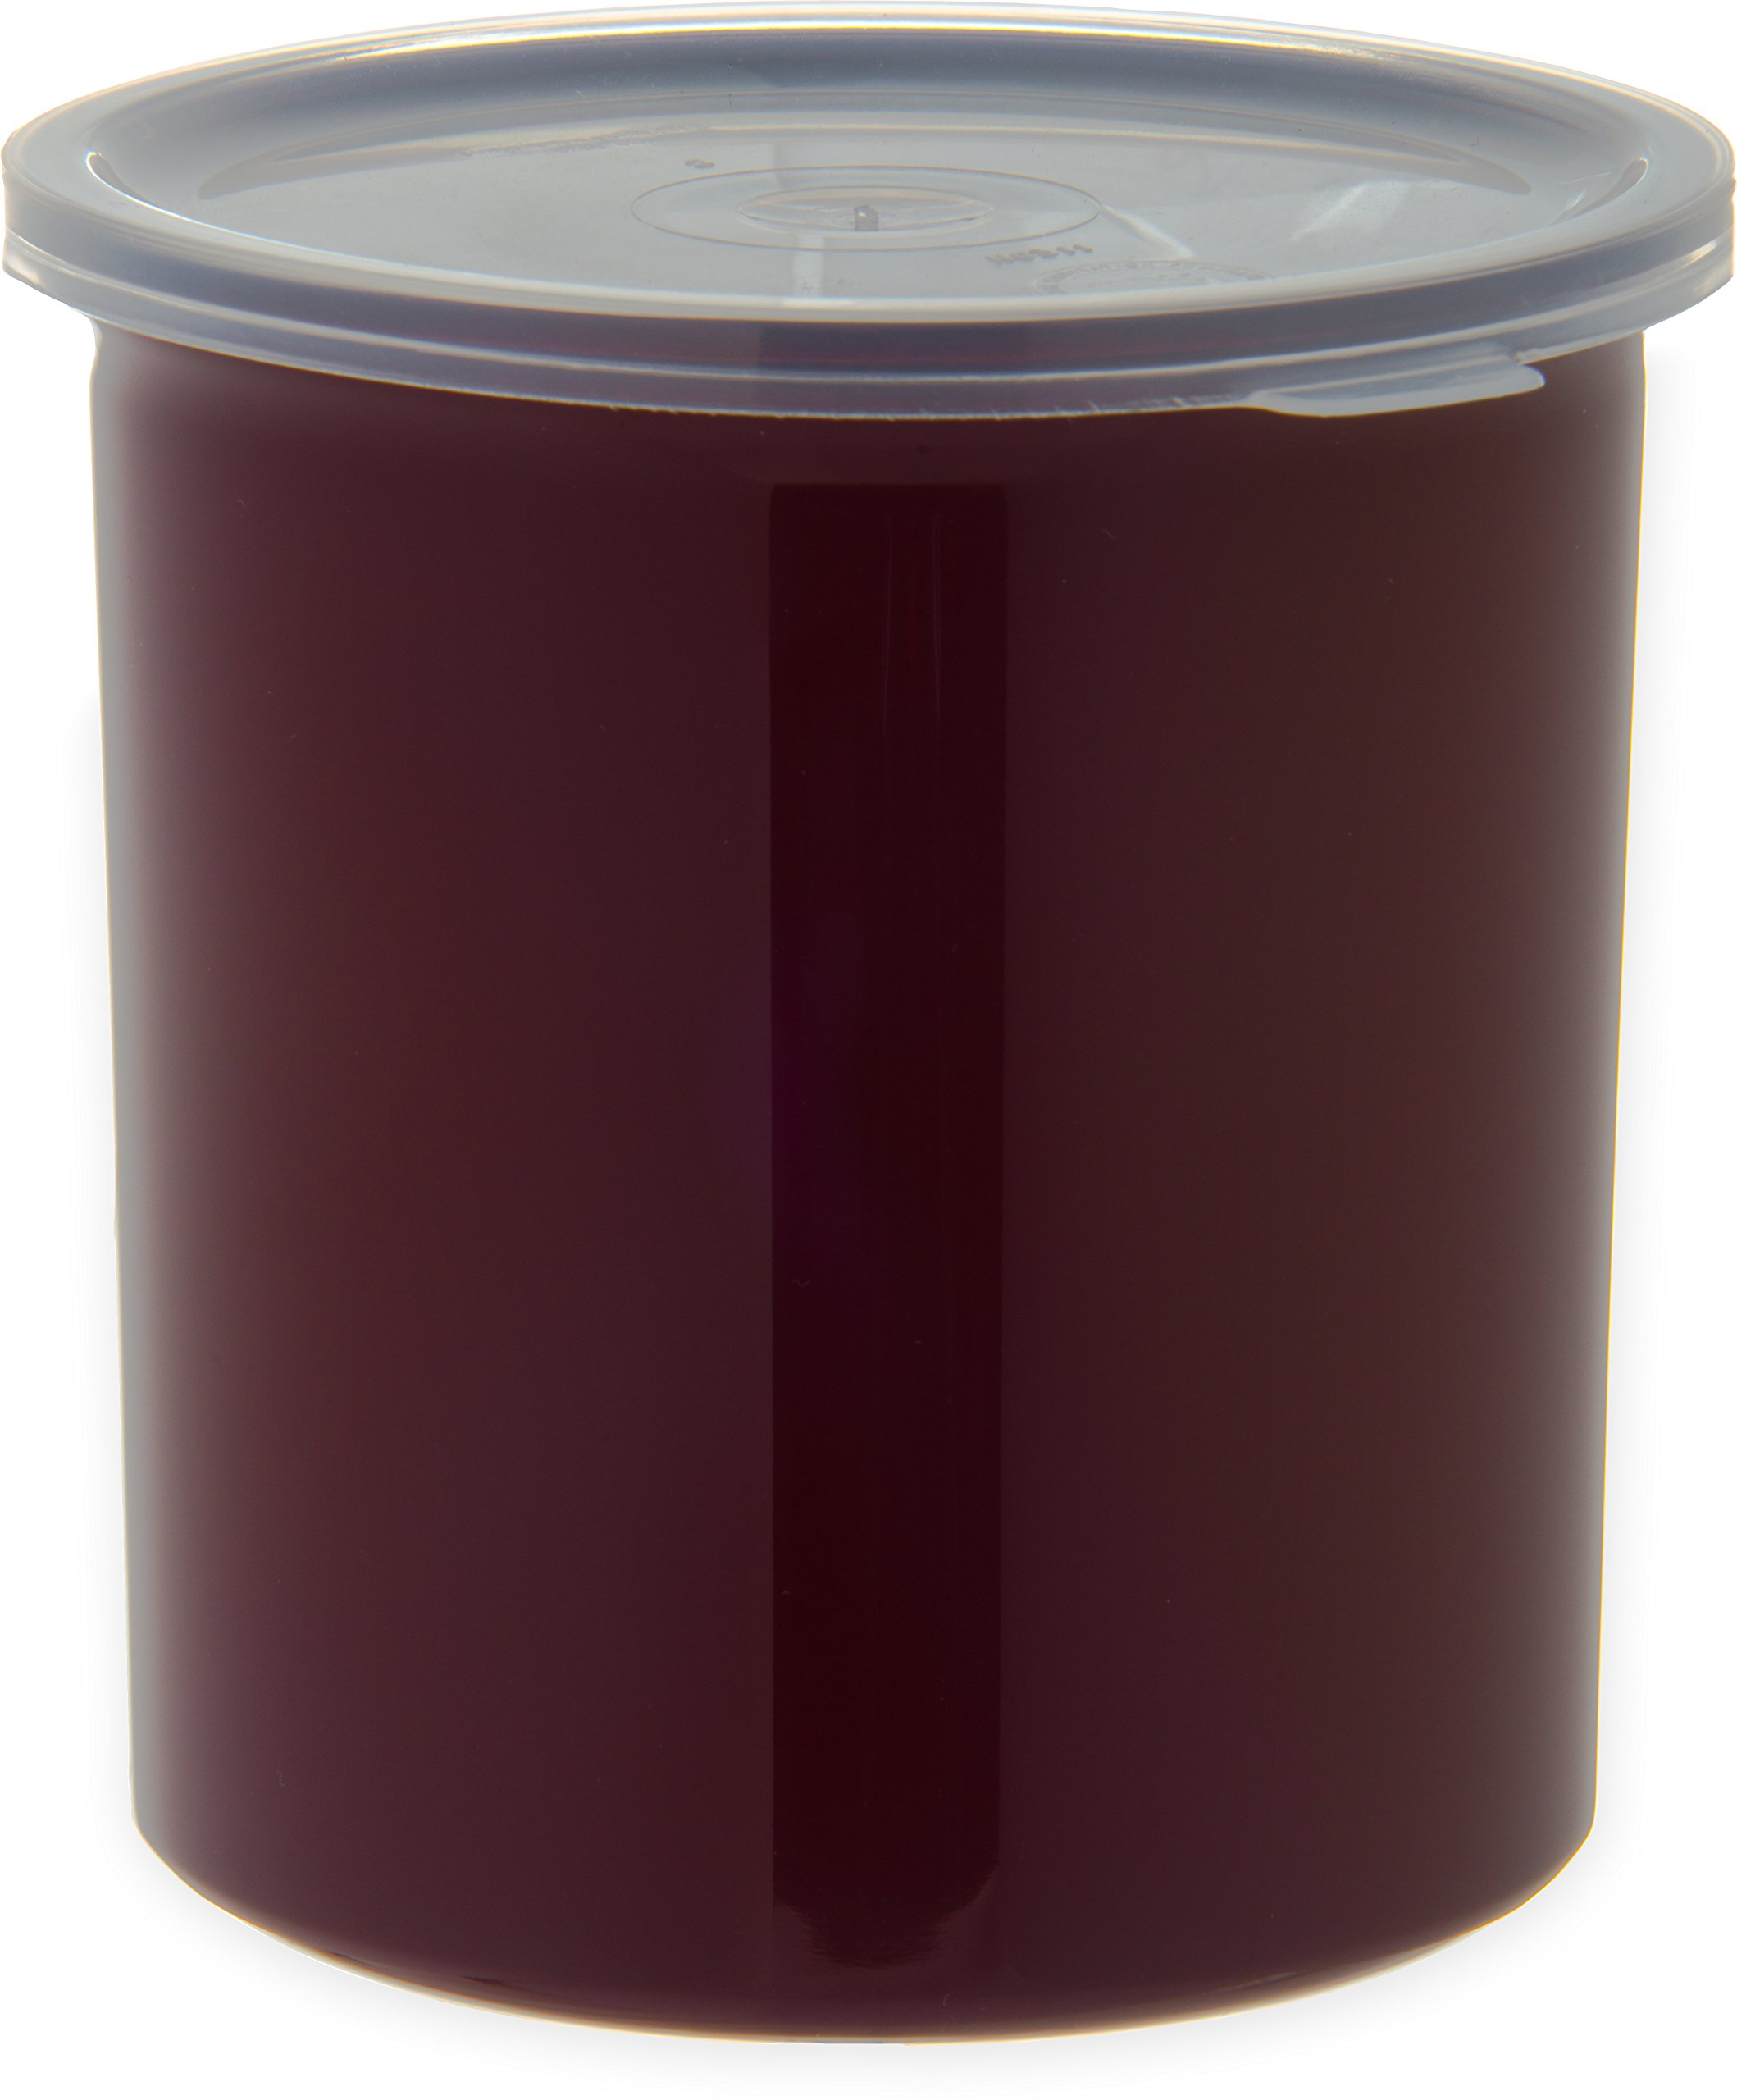 Carlisle 034101 Poly Tuf Polypropylene Crock with Lid, 1.2 qt. Capacity, 5.18'' Height, Brown (Case of 12)